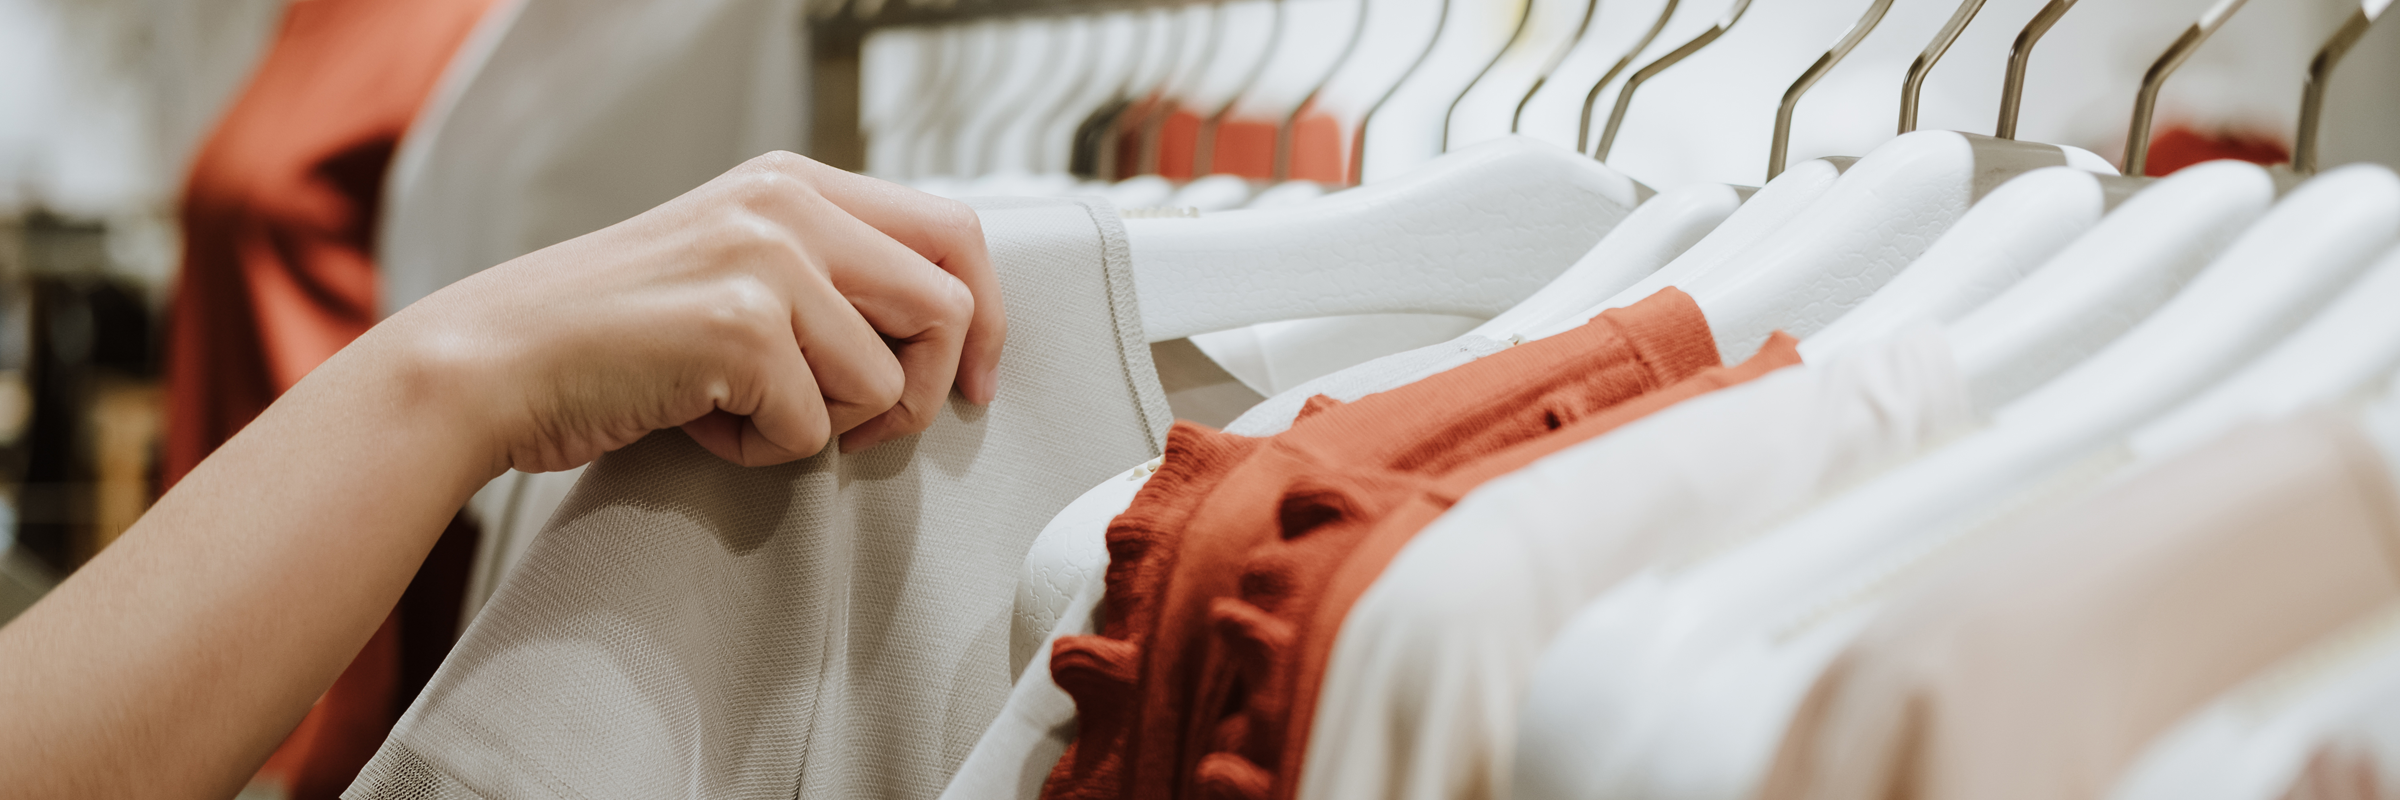 Supply Chain: Getting Circular Economy Right: Let's Put People at the Center of Circular Fashion